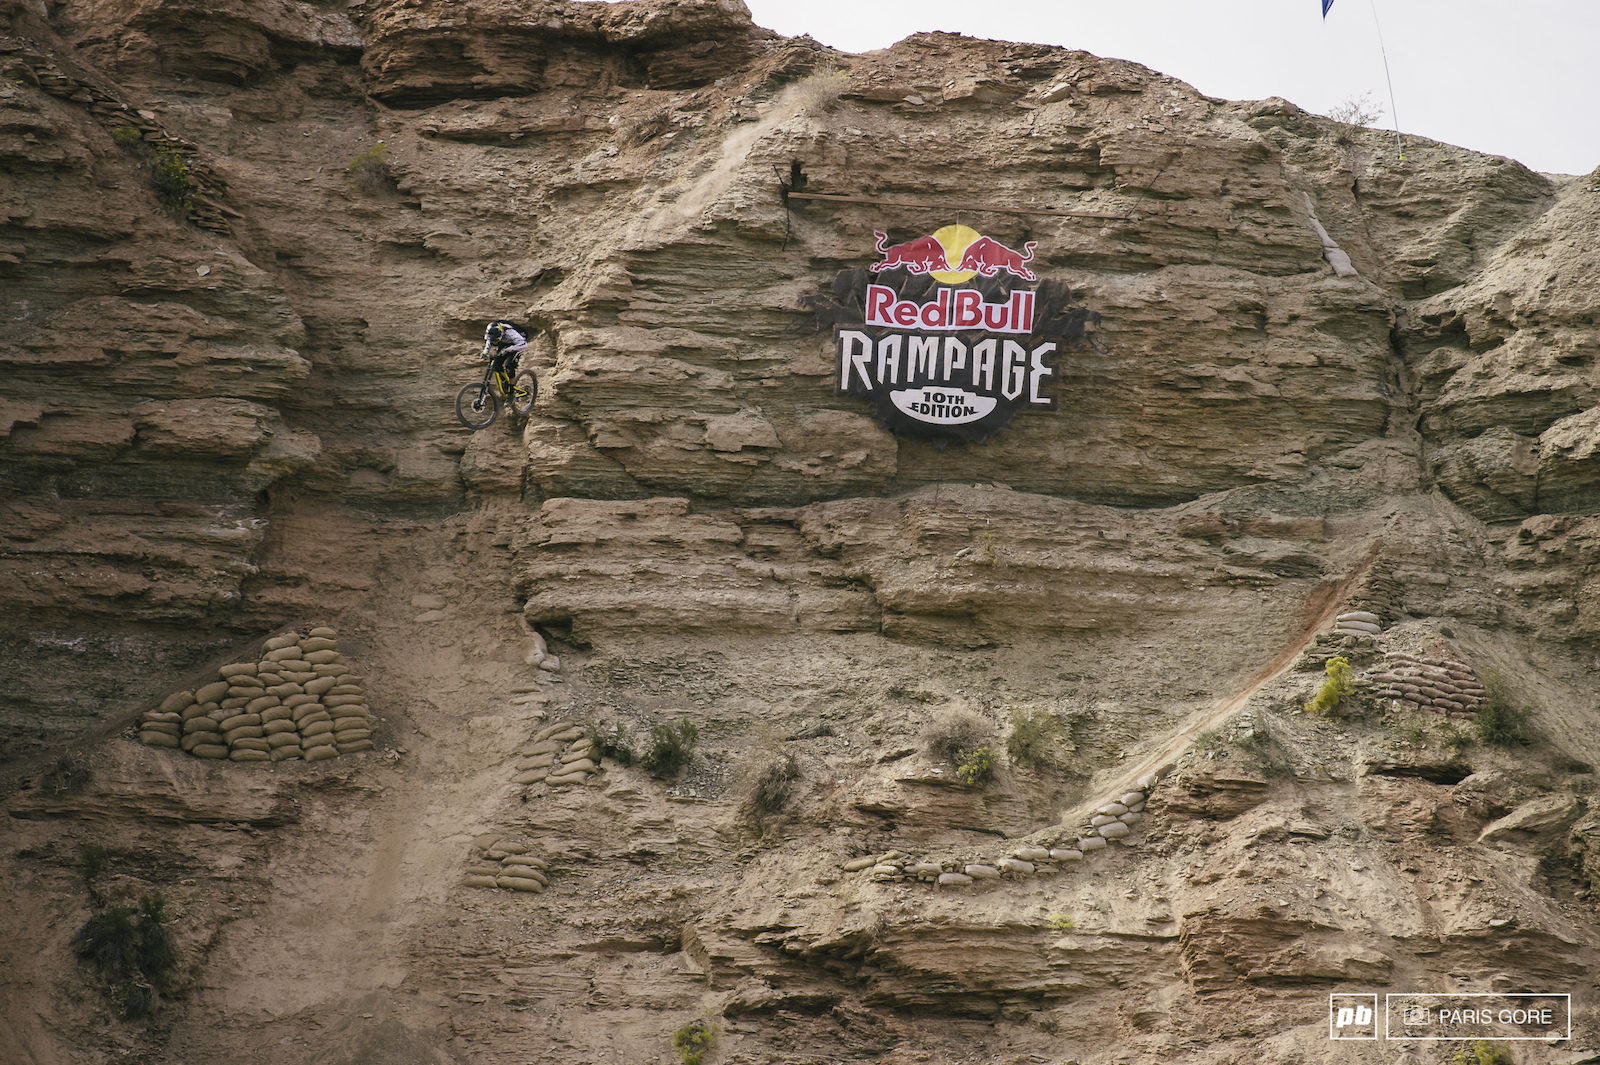 Kurt Sorge and Darren Berrecloth both share this massive start drop which leads into the ridgeline.